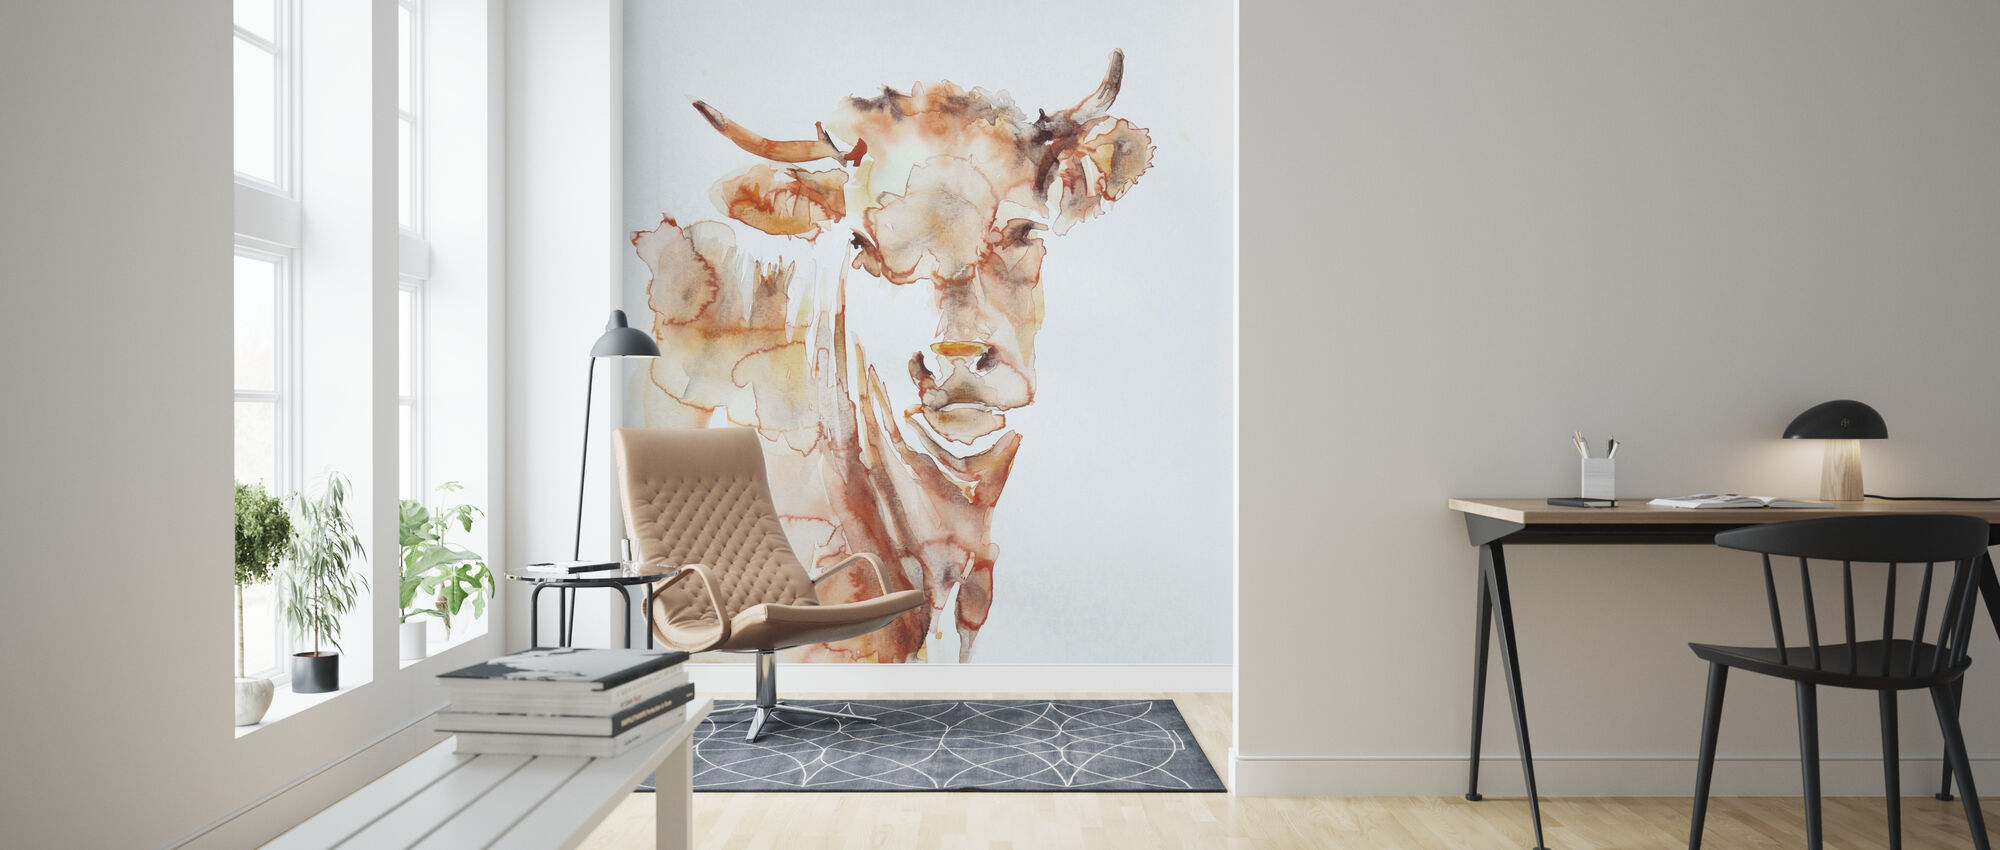 Village Cow - Wallpaper - Living Room